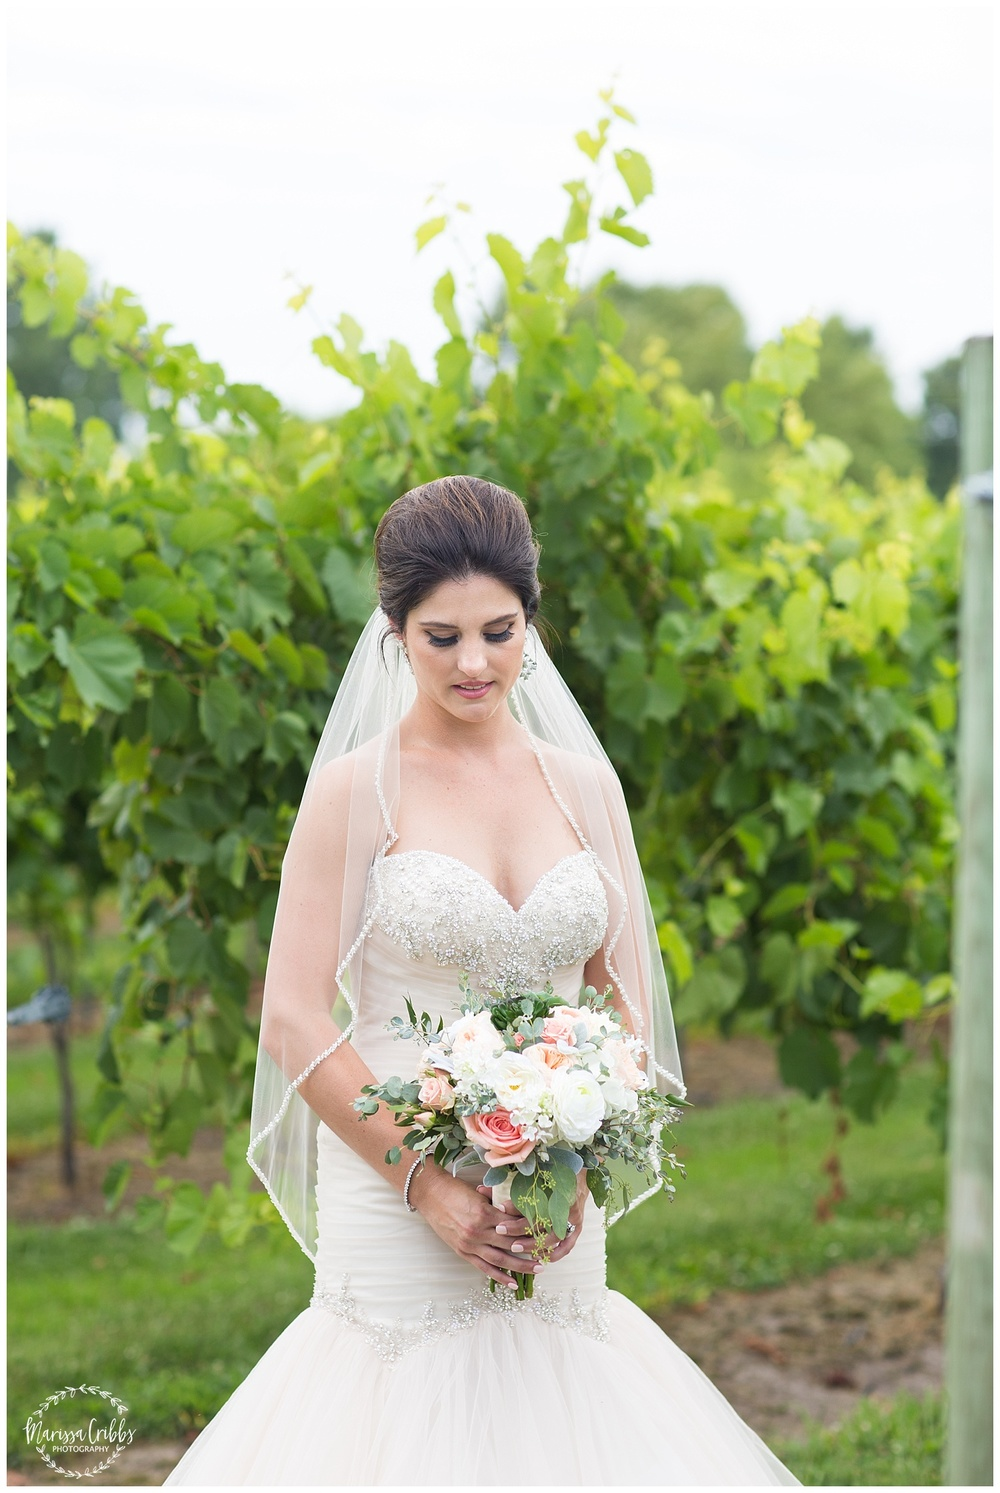 Stonehaus Winery Wedding | KC Wedding Photographer | Marissa Cribbs Photography | The Pavilion Event Space_0378.jpg